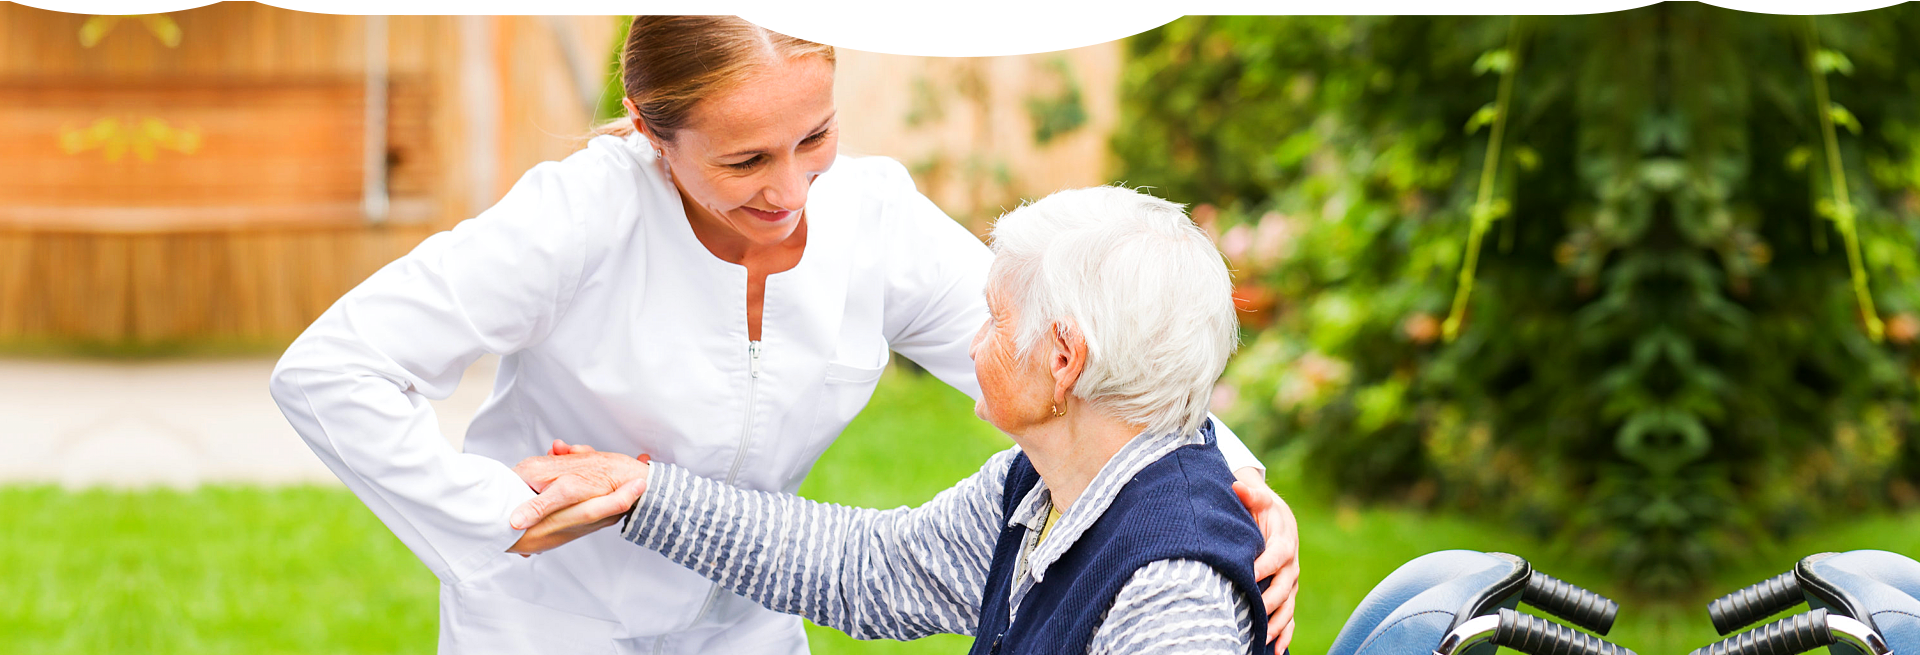 caregiver giving support to a sitting patient